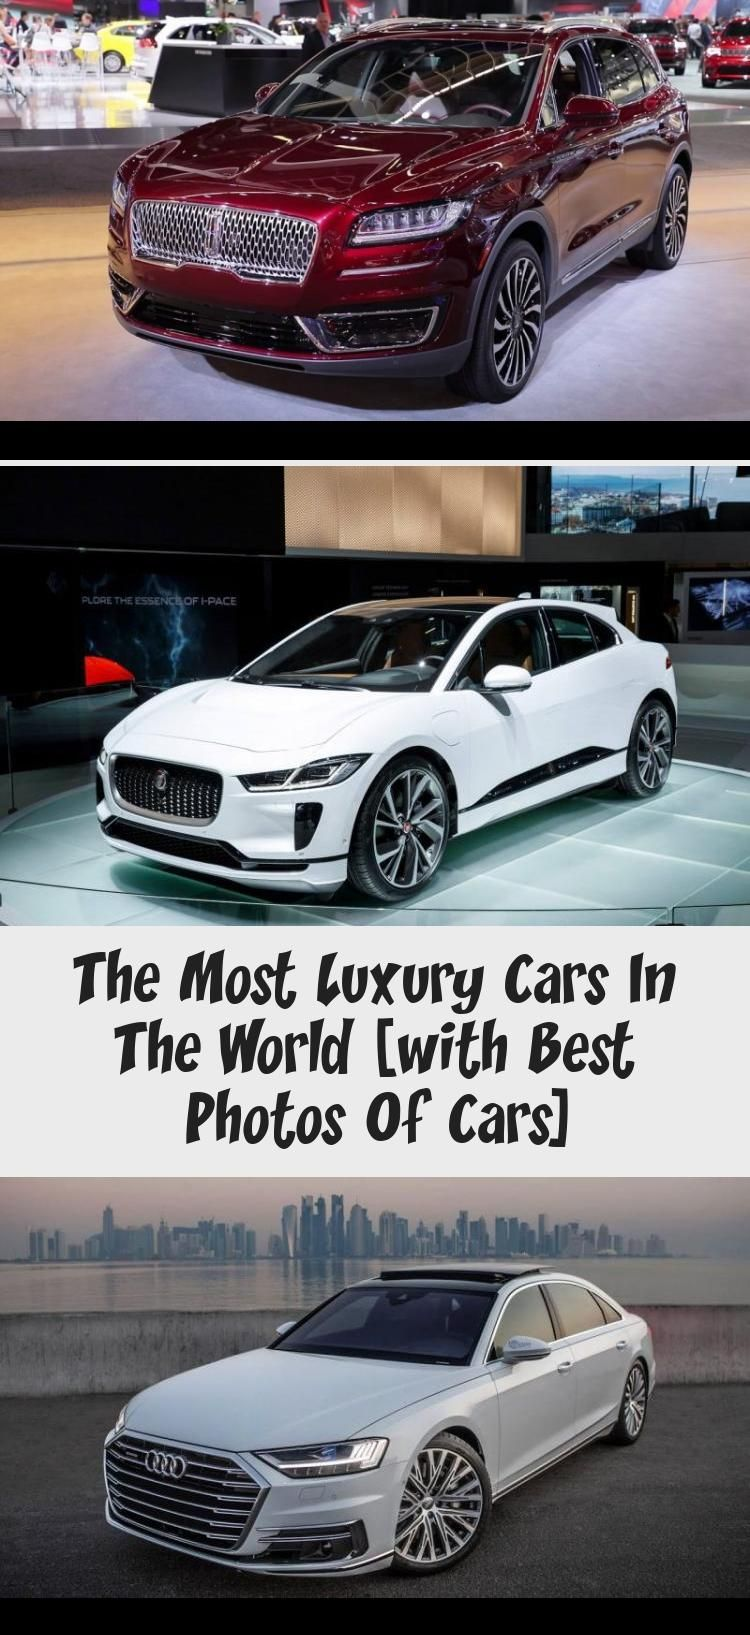 The Most Luxury Cars In The World With Best Photos Of In 2020 Car In The World